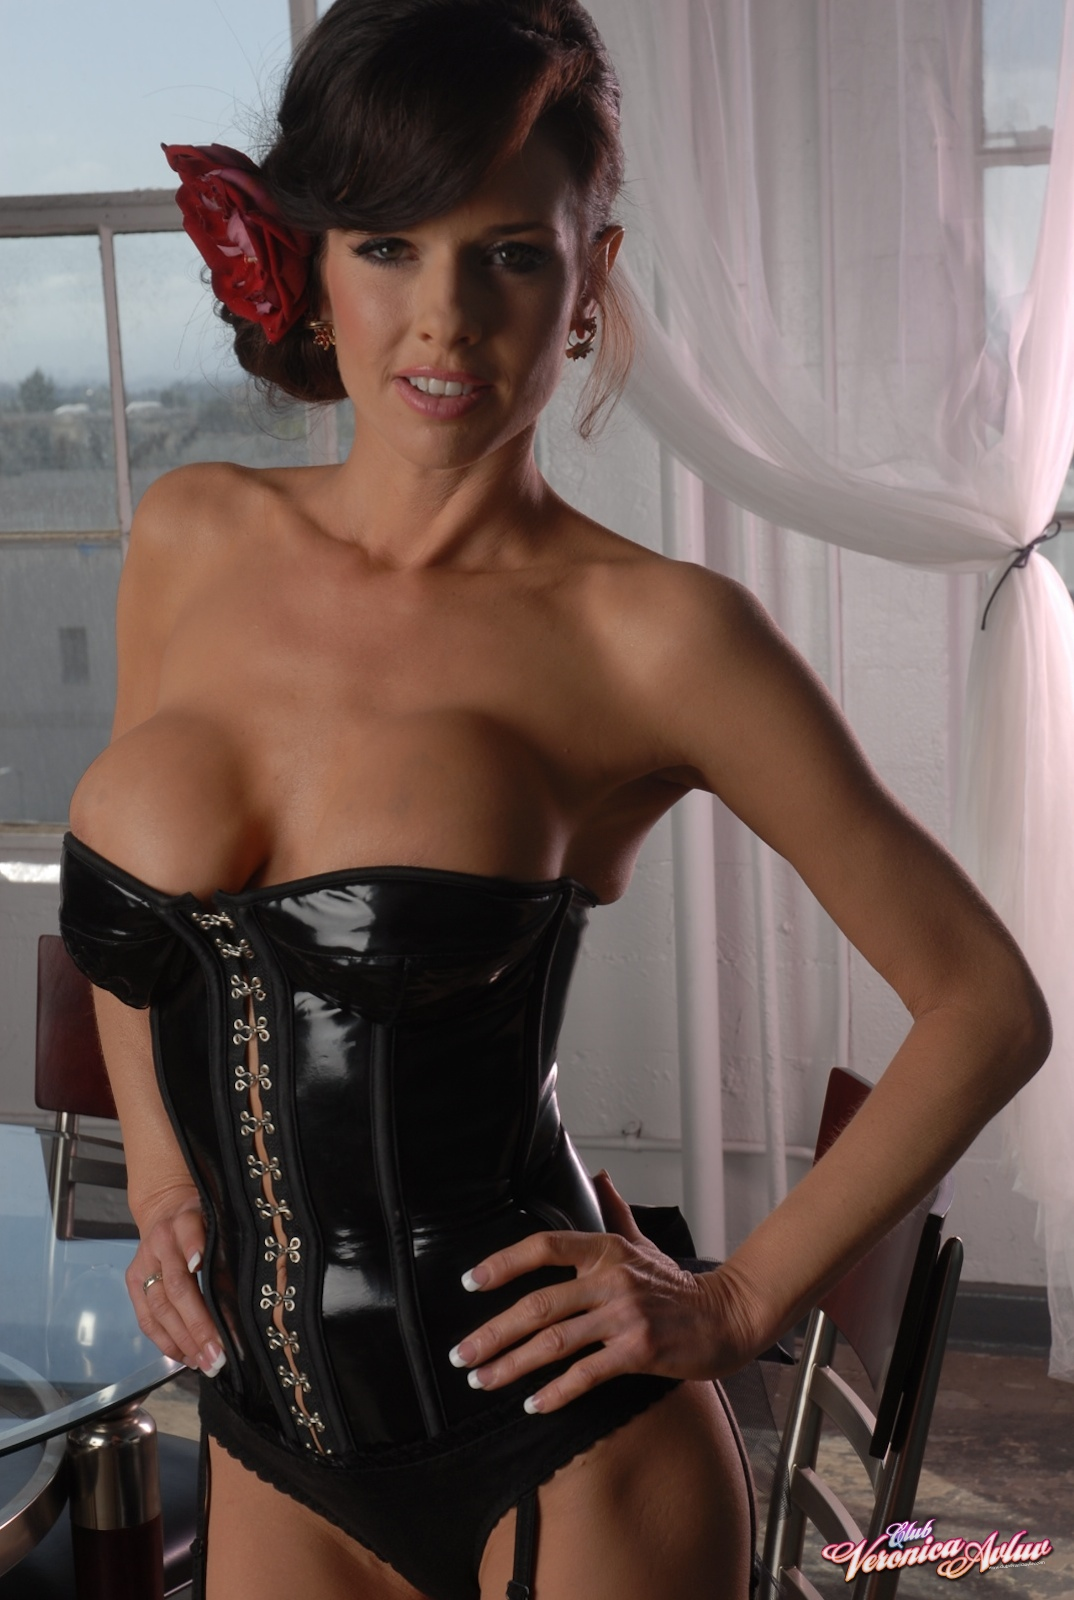 Veronica Avluv Big Tits in Shiny Black Corset and Fishnet Stockings